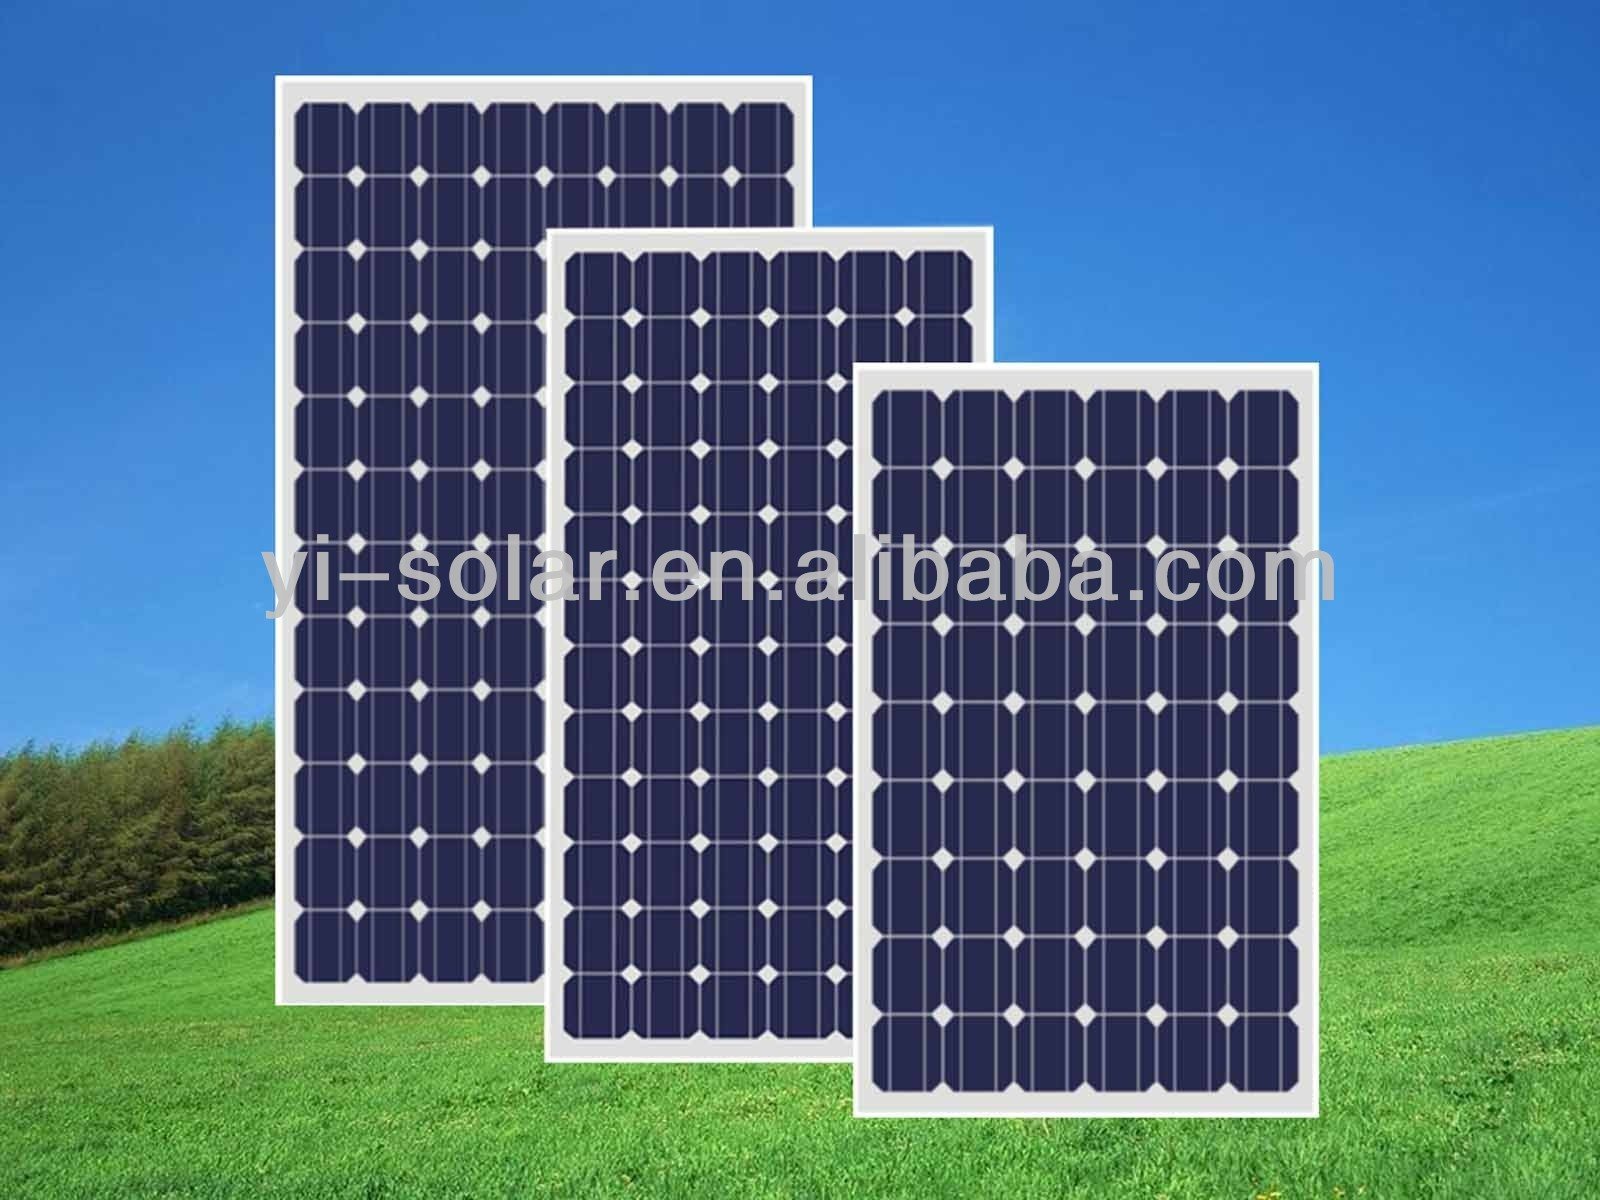 For sale solar PV module 250W mono solar panel CE ISO TUV IEC excellent quality